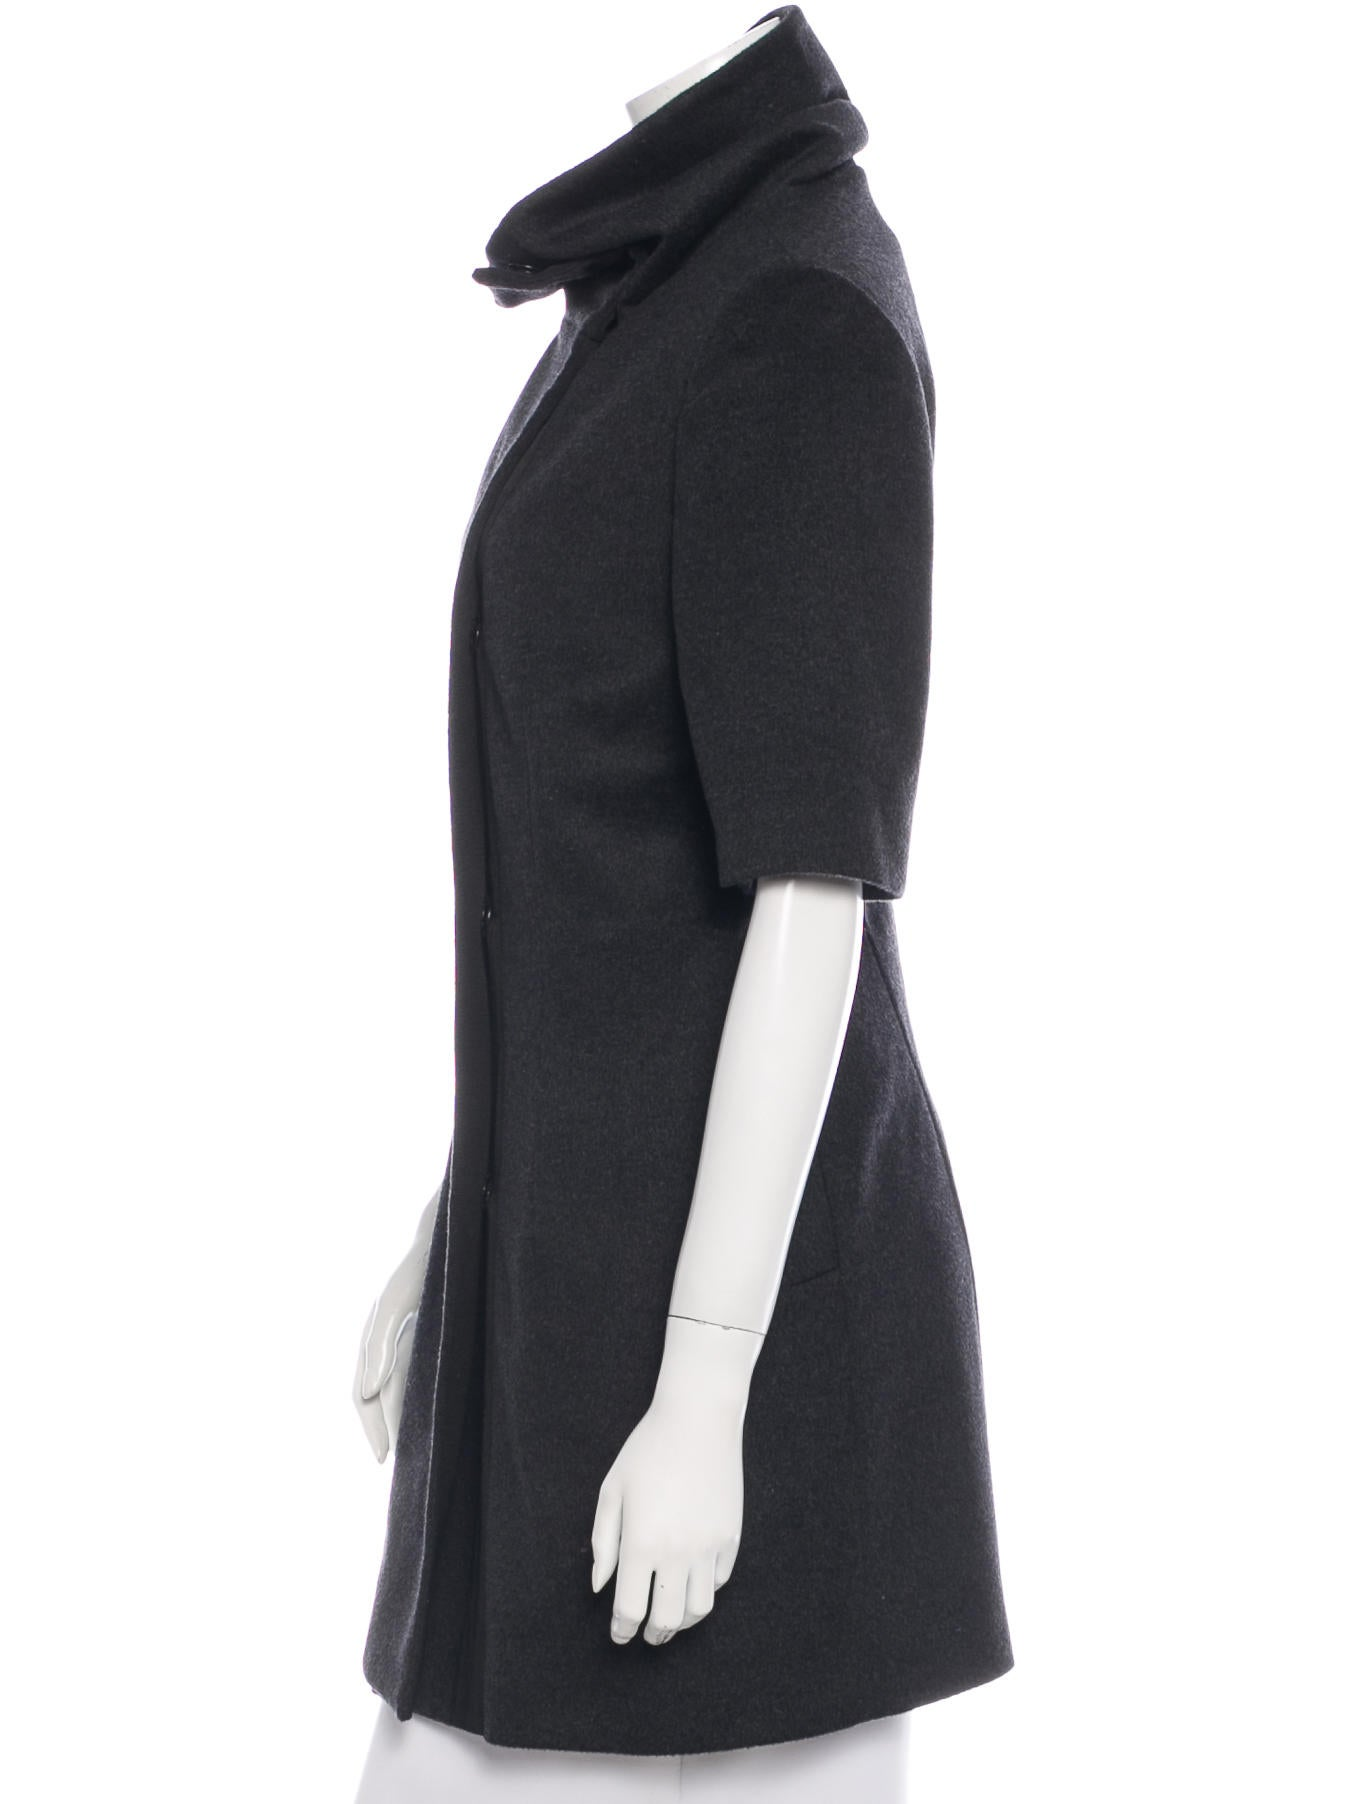 Jenni Kayne Short Sleeve Wool Coat - Clothing - WJK23182 | The